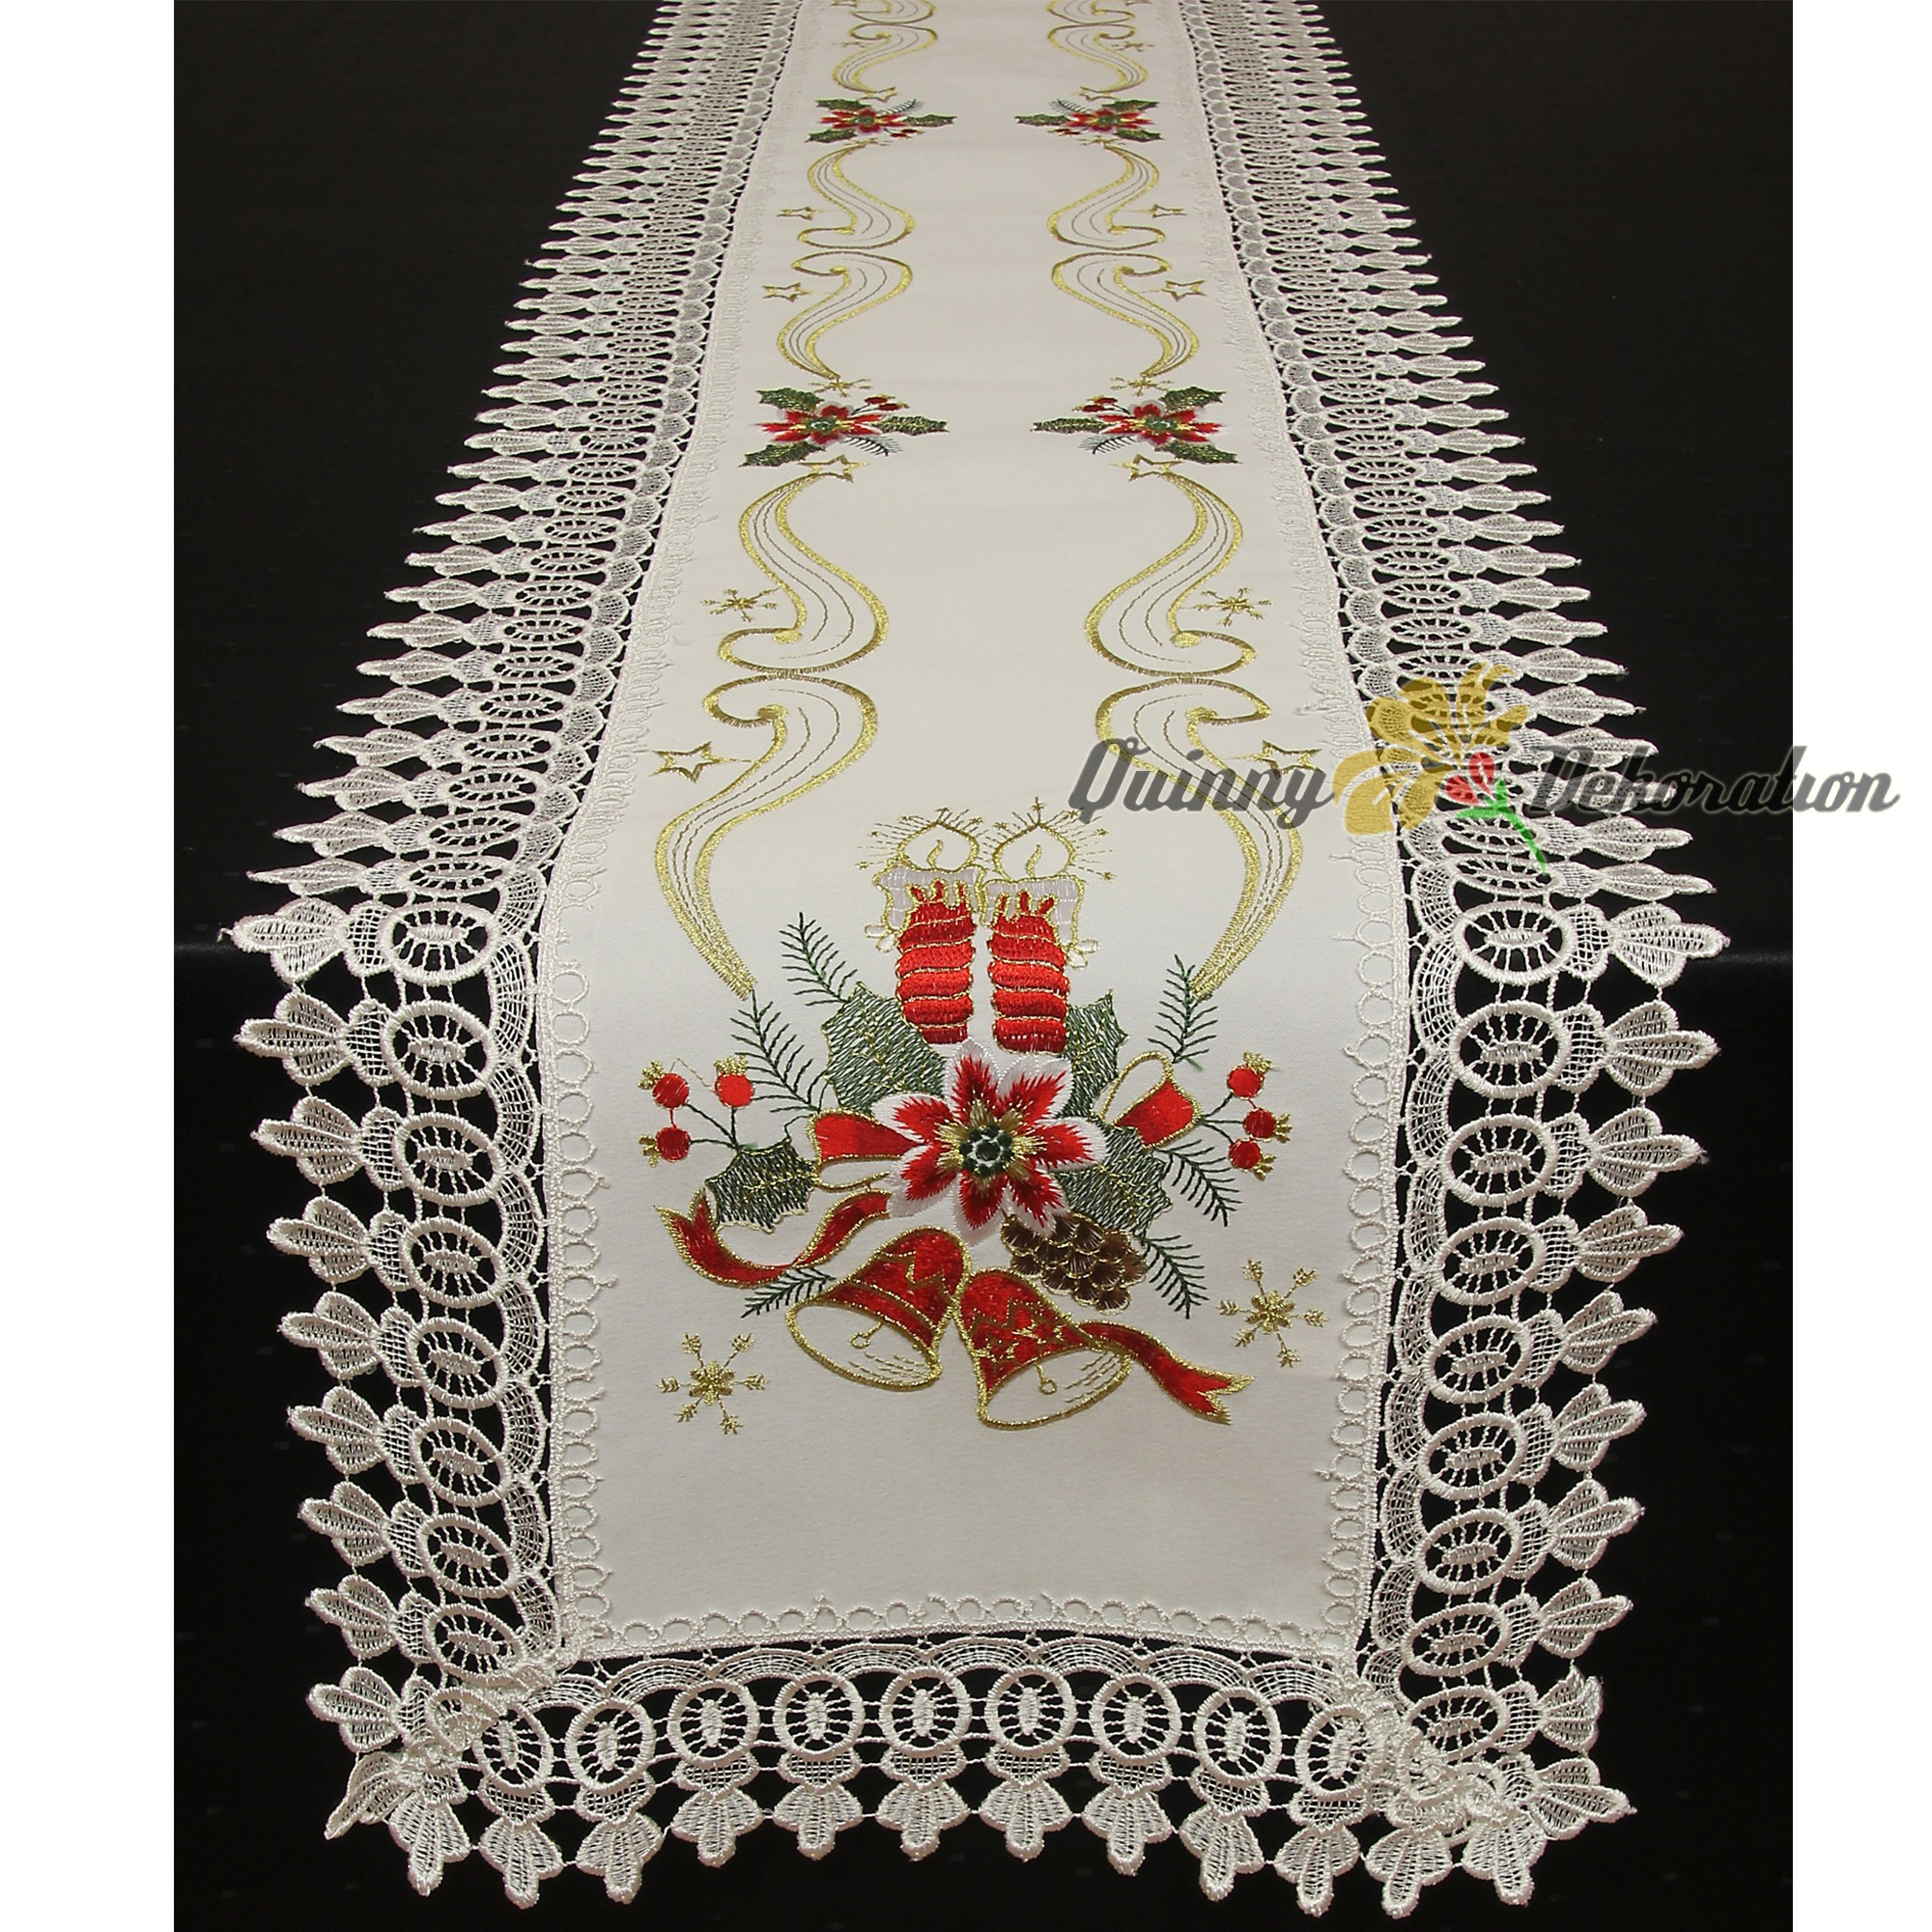 noble lace tablecloth table runner doily white red gold. Black Bedroom Furniture Sets. Home Design Ideas